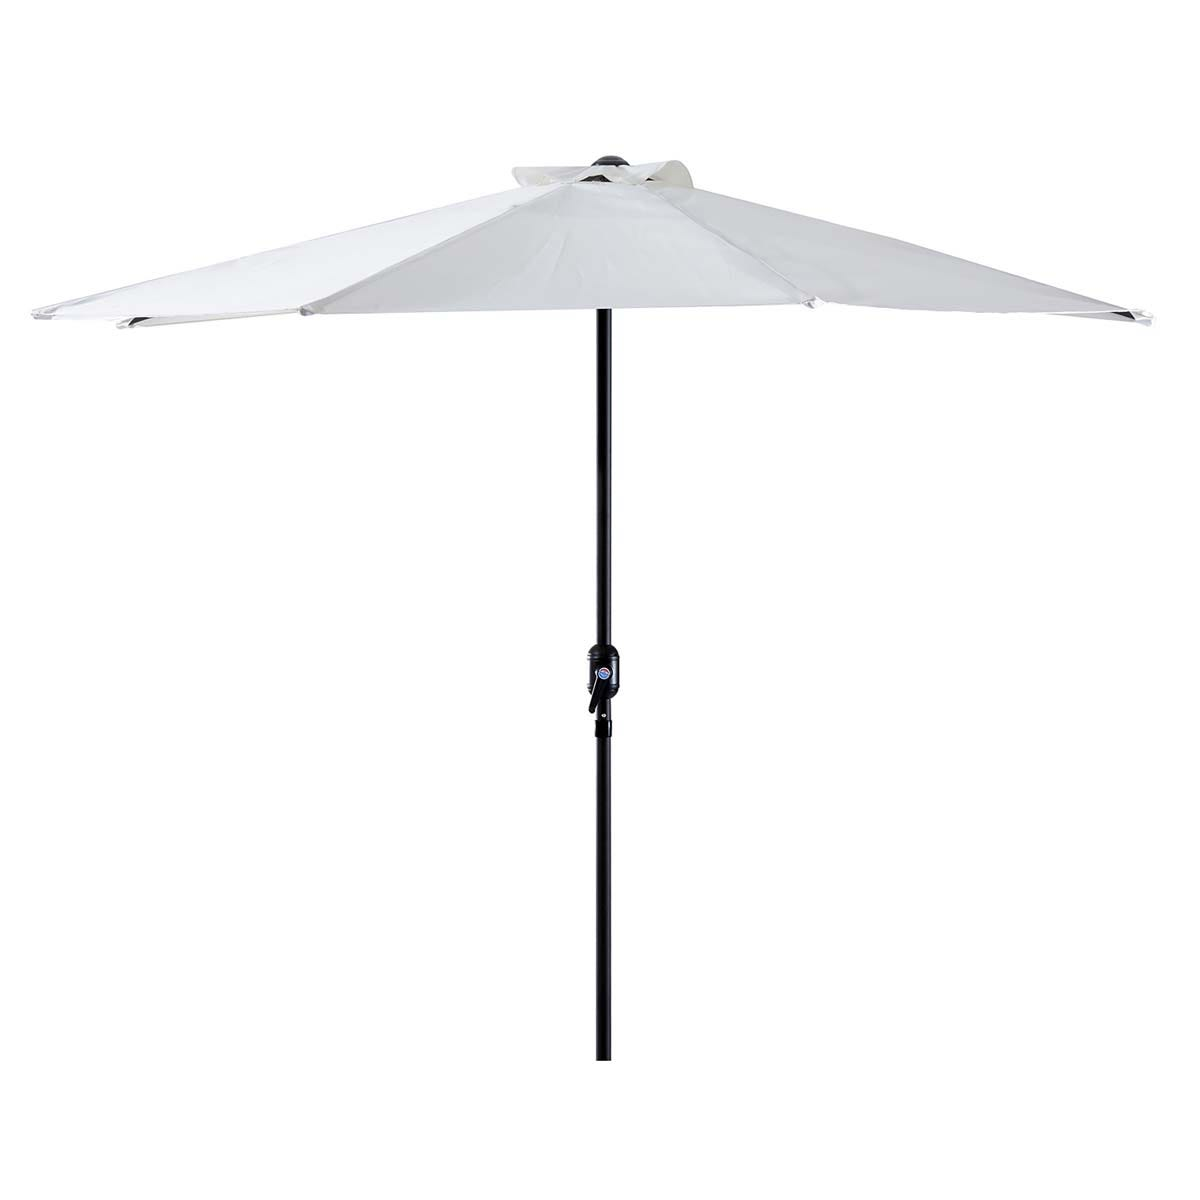 Outsunny 3m Half Round Parasol (base not included) - White